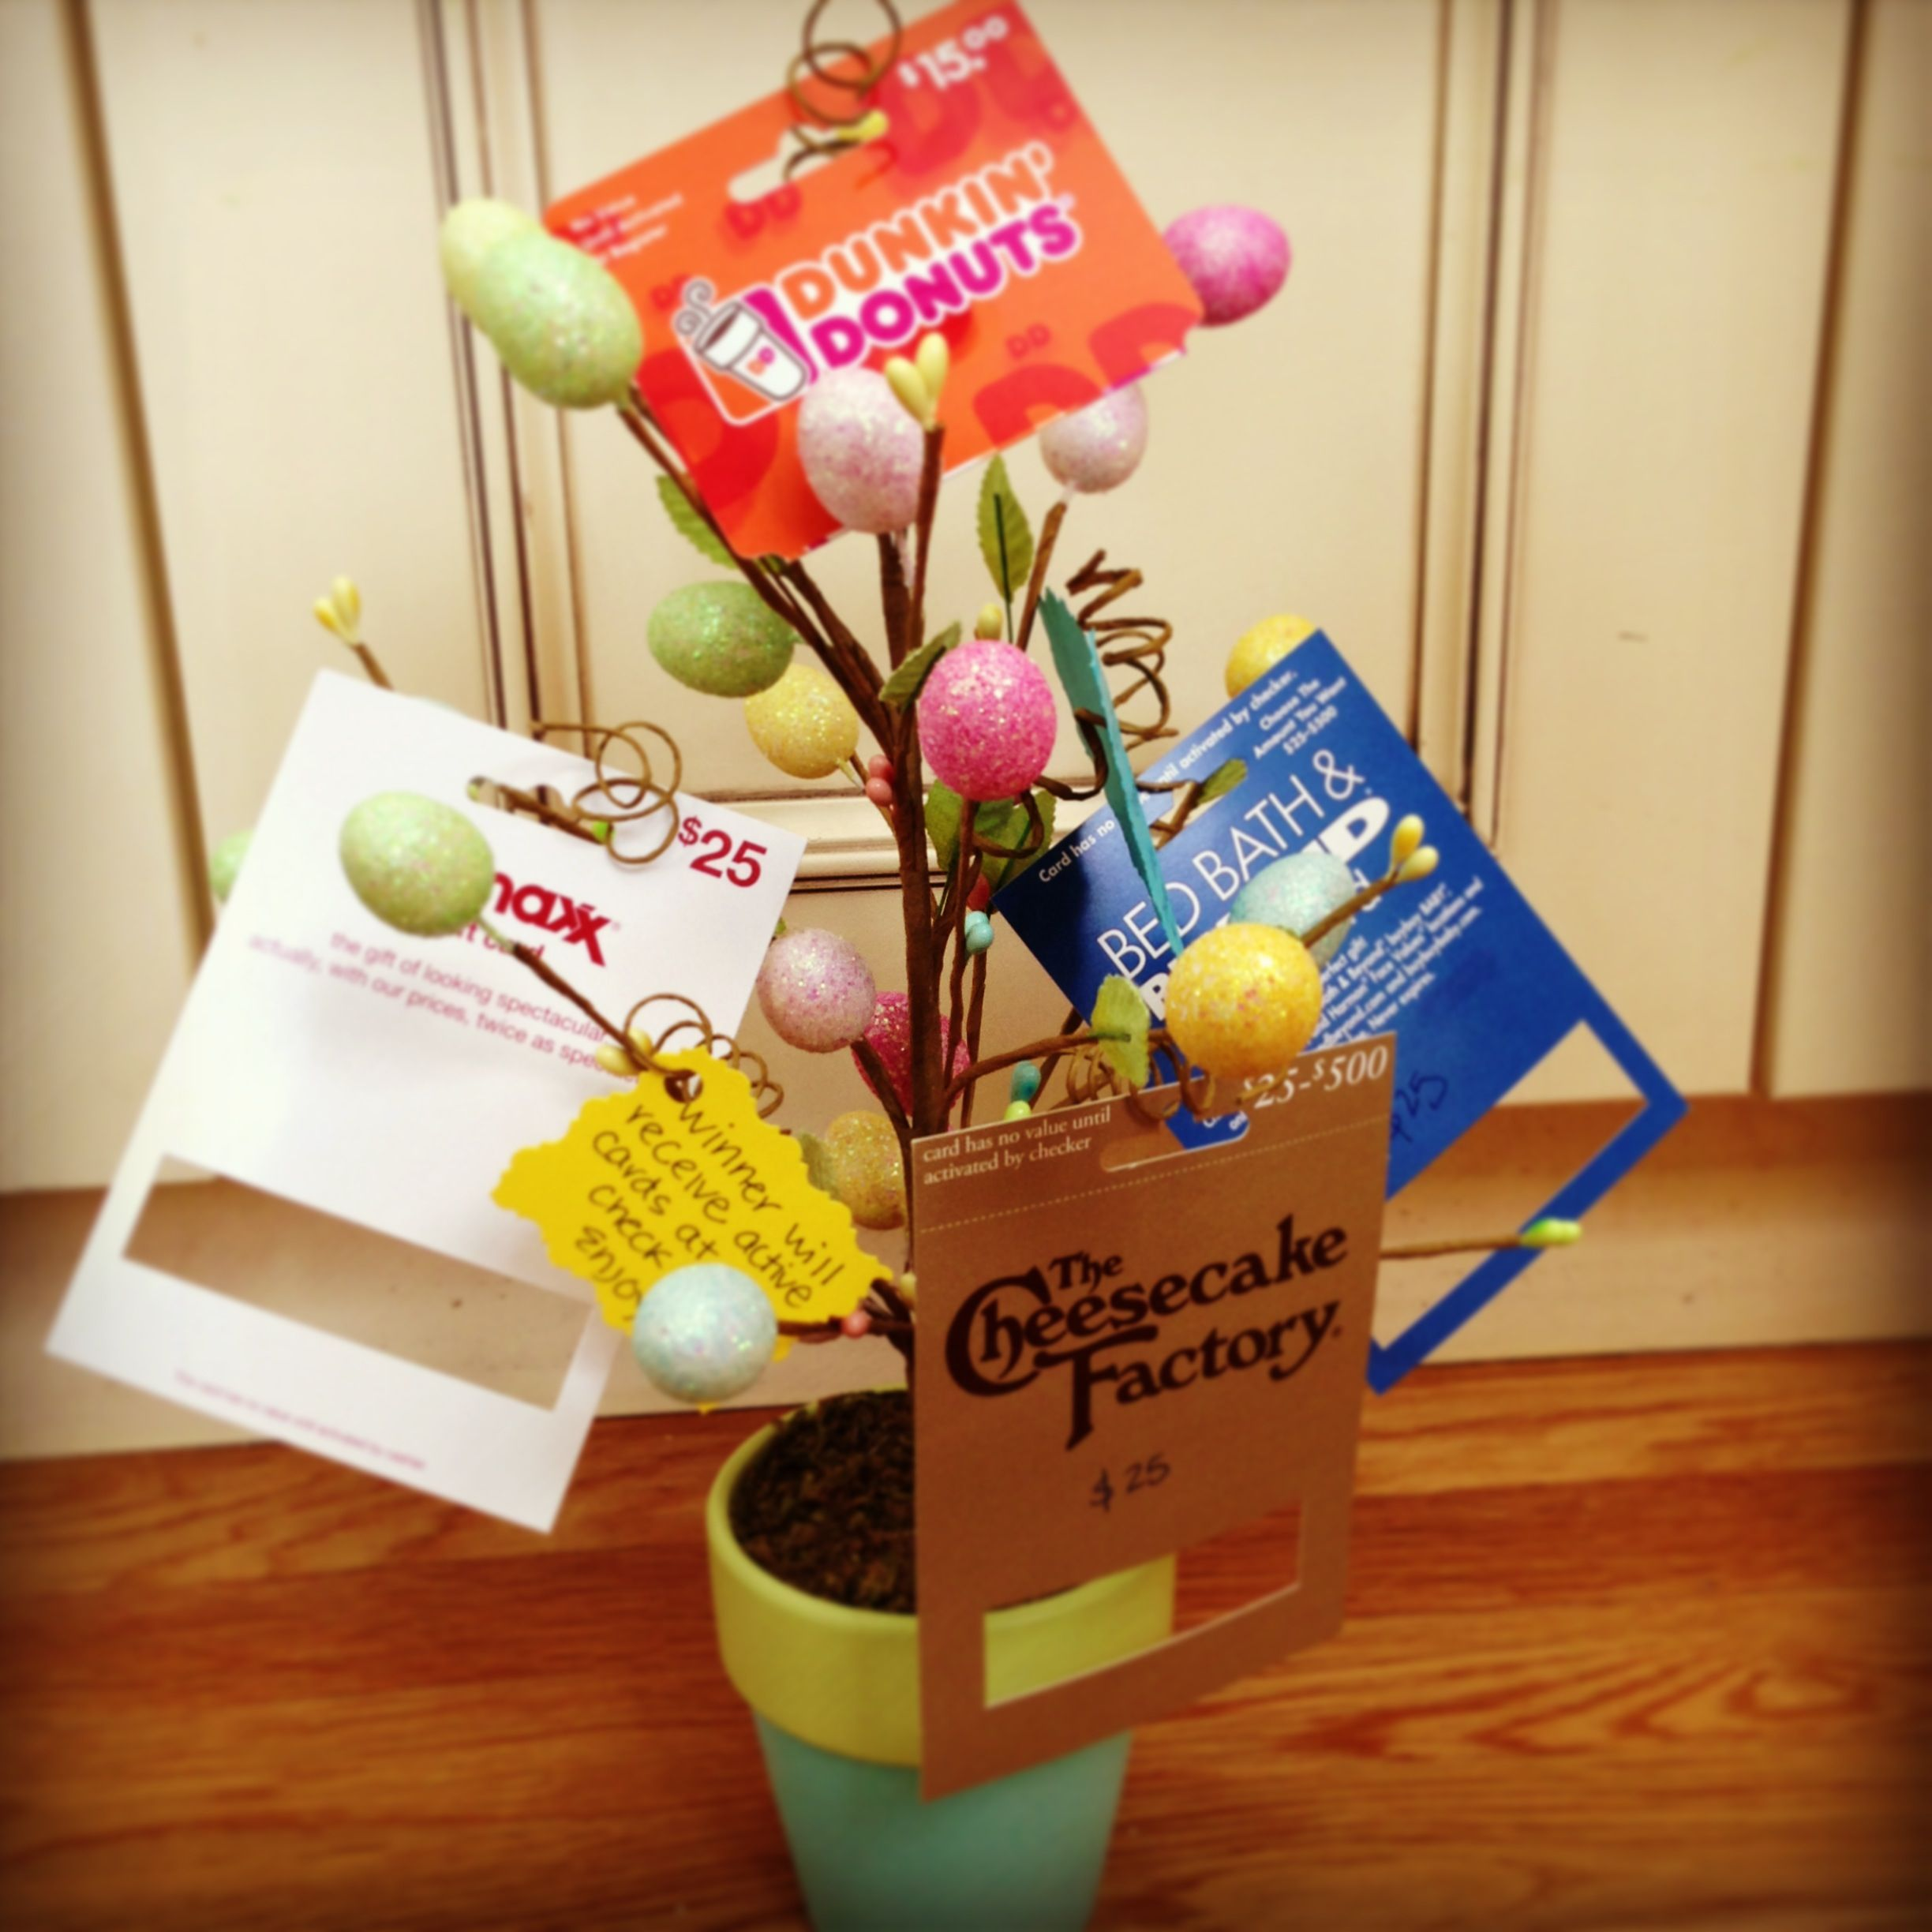 Gift card tree ideas pinterest - Gift Card Tree Getting Ready For Preschool Silent Auction